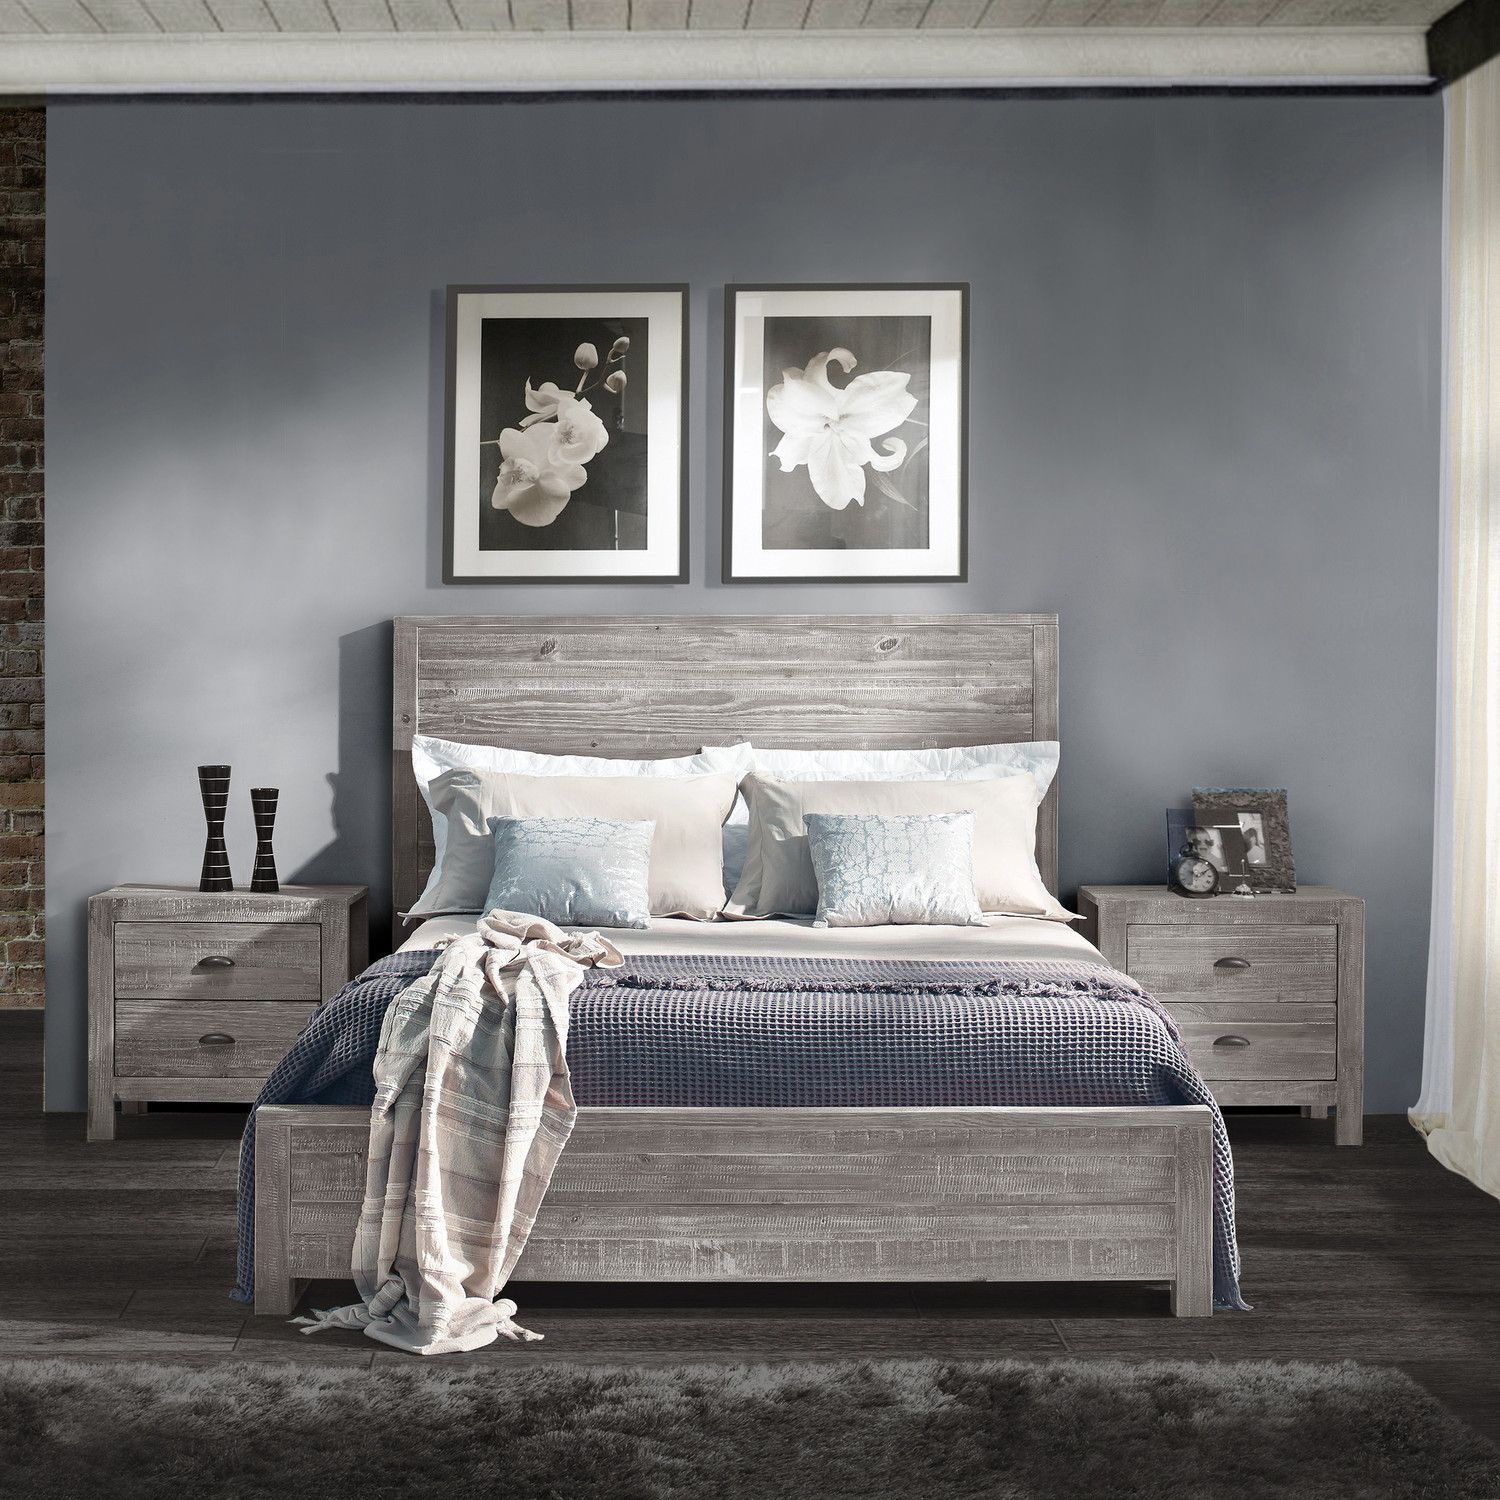 Update The Look Of Your Bedroom With The Grain Wood